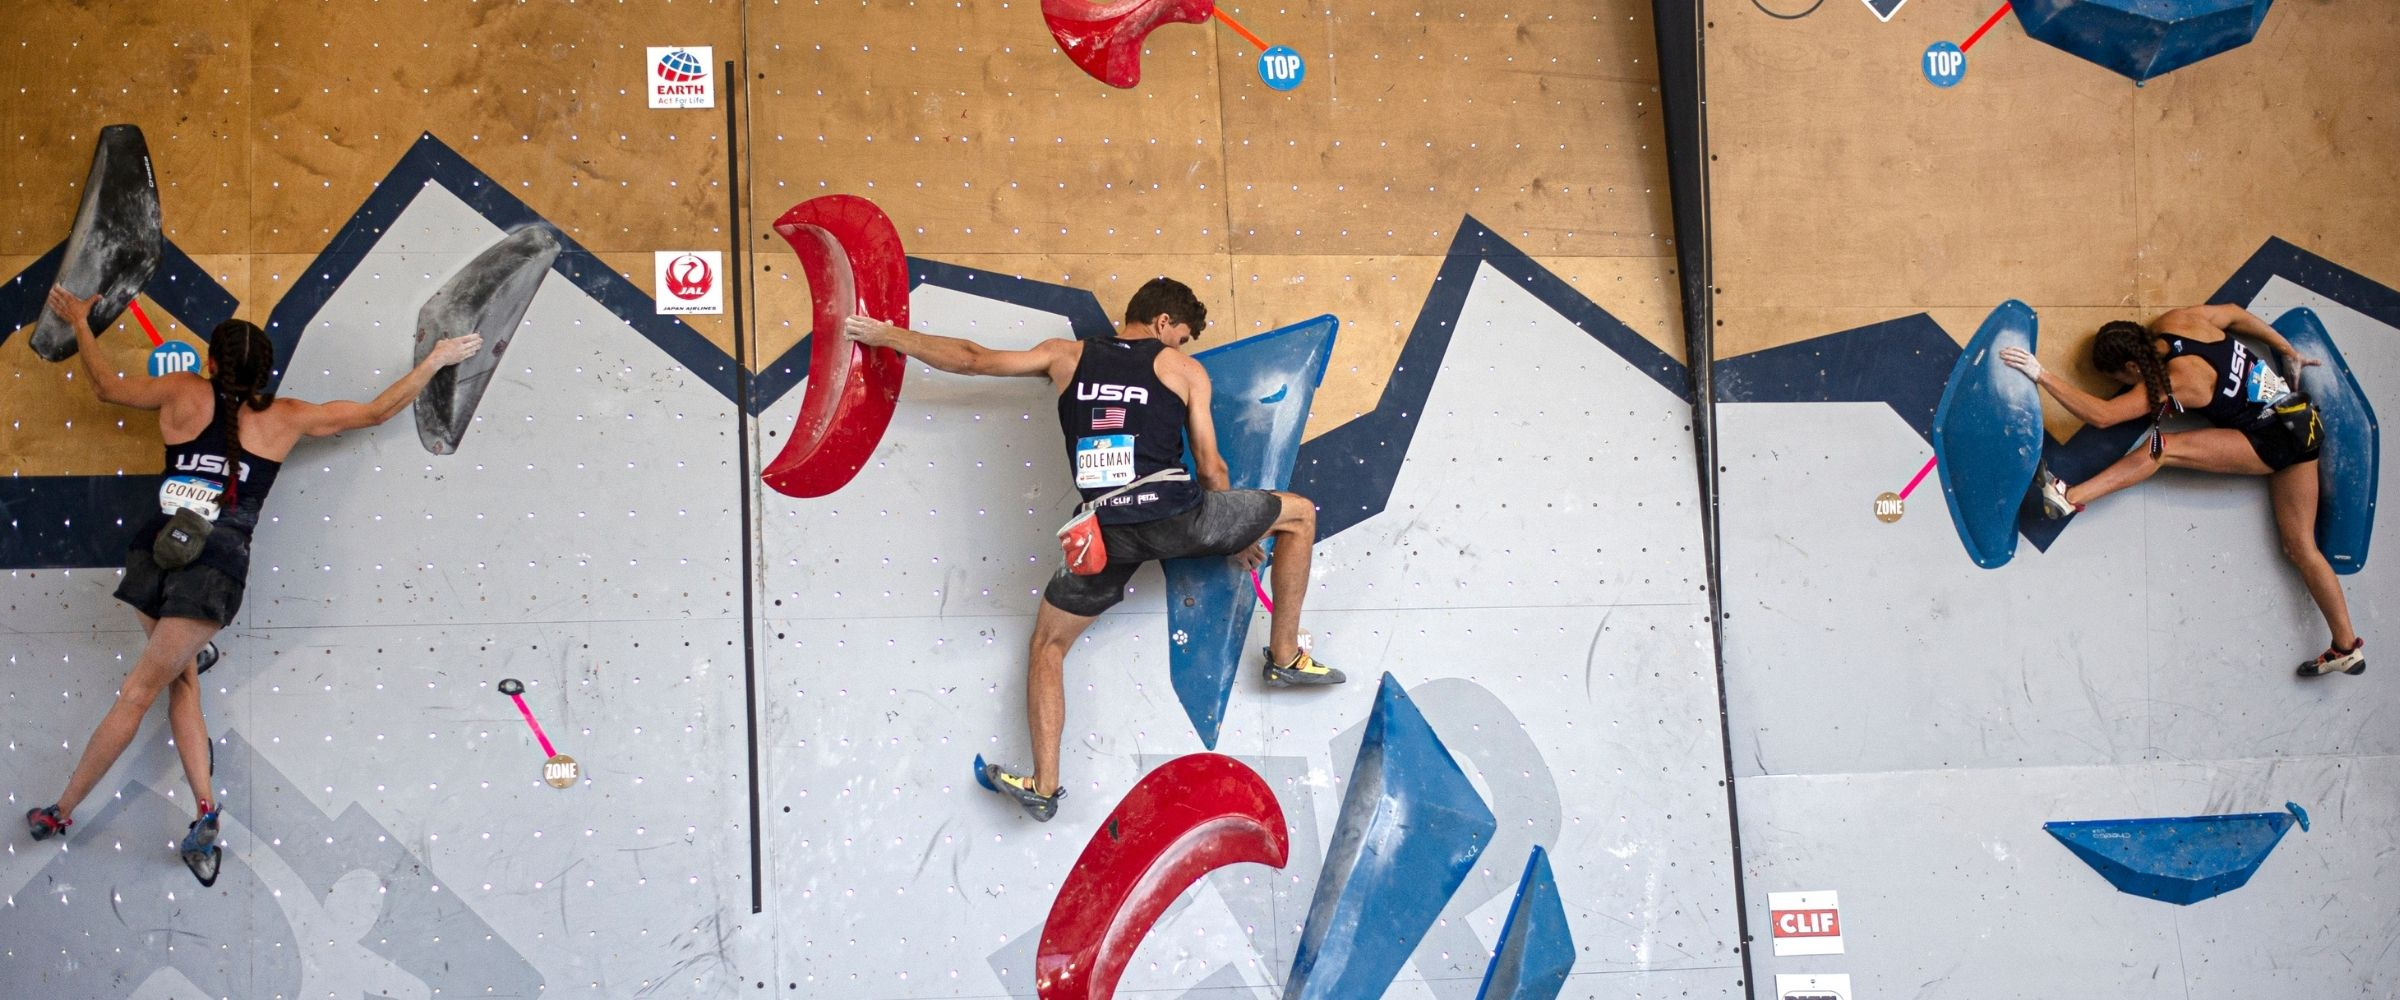 World Cup Rock Climbing Competition